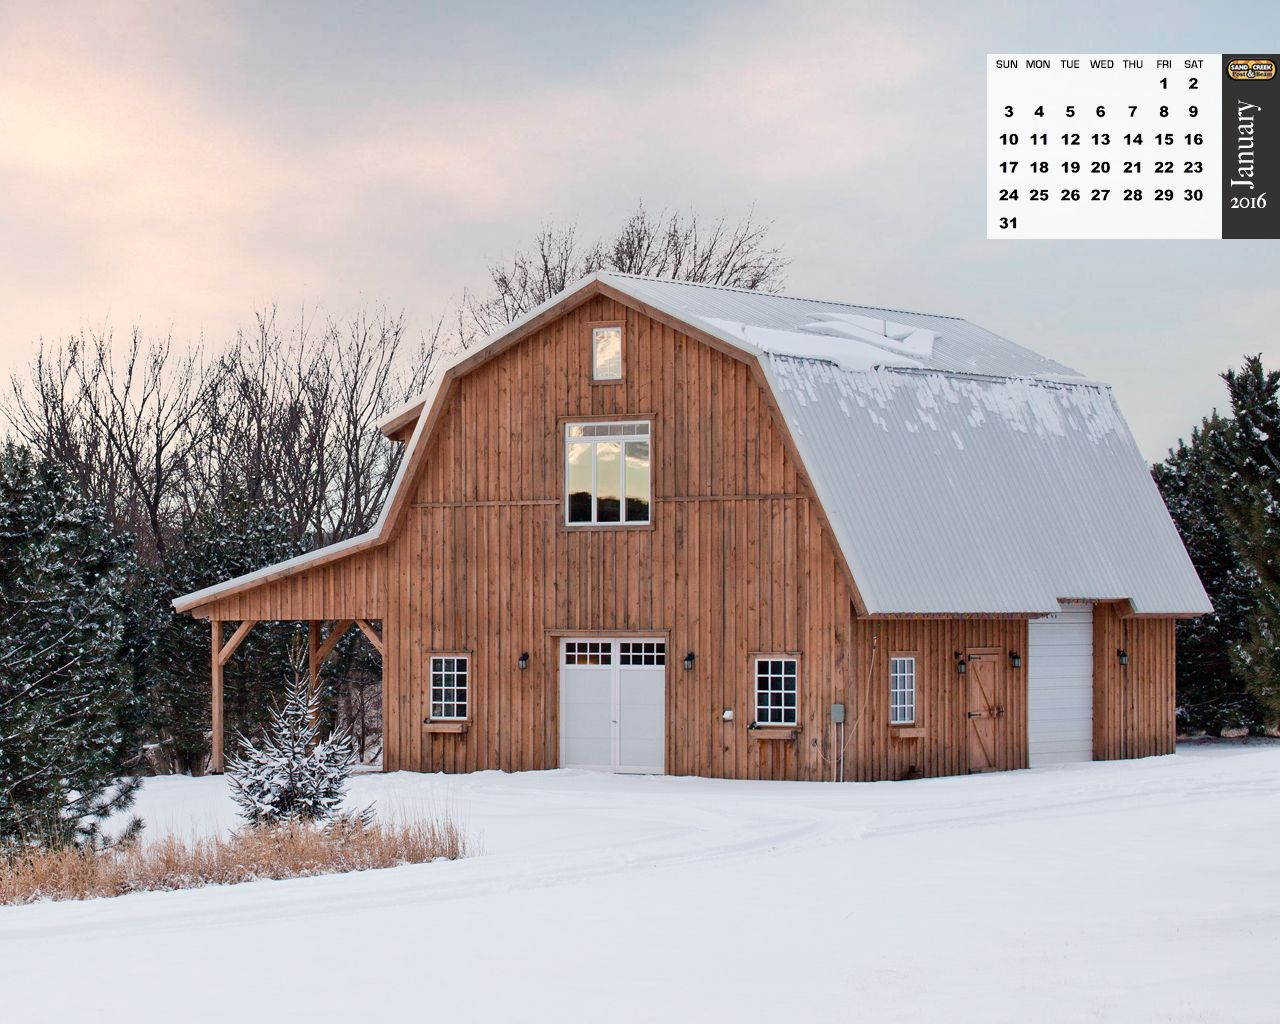 Traditional wood barn projects photo galleries Gambrel style barns